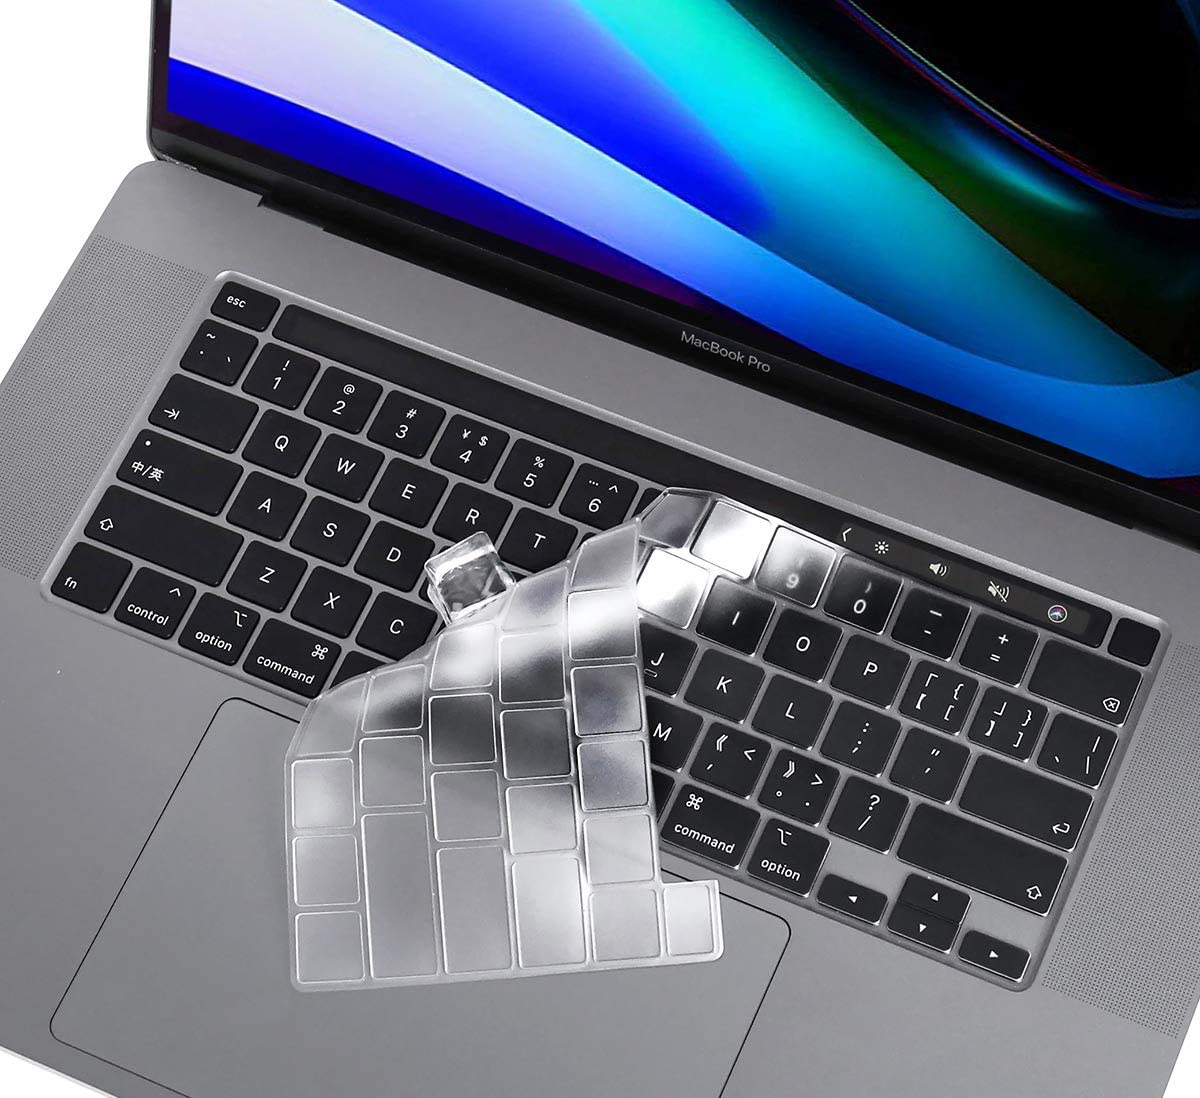 Ultra Thin Clear Keyboard Cover for 2020 Newest MacBook Pro 13 Inch Model A2338 A2289 A2251 & 2020 2019 MacBook Pro 16 inch Model A2141 with Touch Bar & Touch ID Keyboard Skin Protector Cover